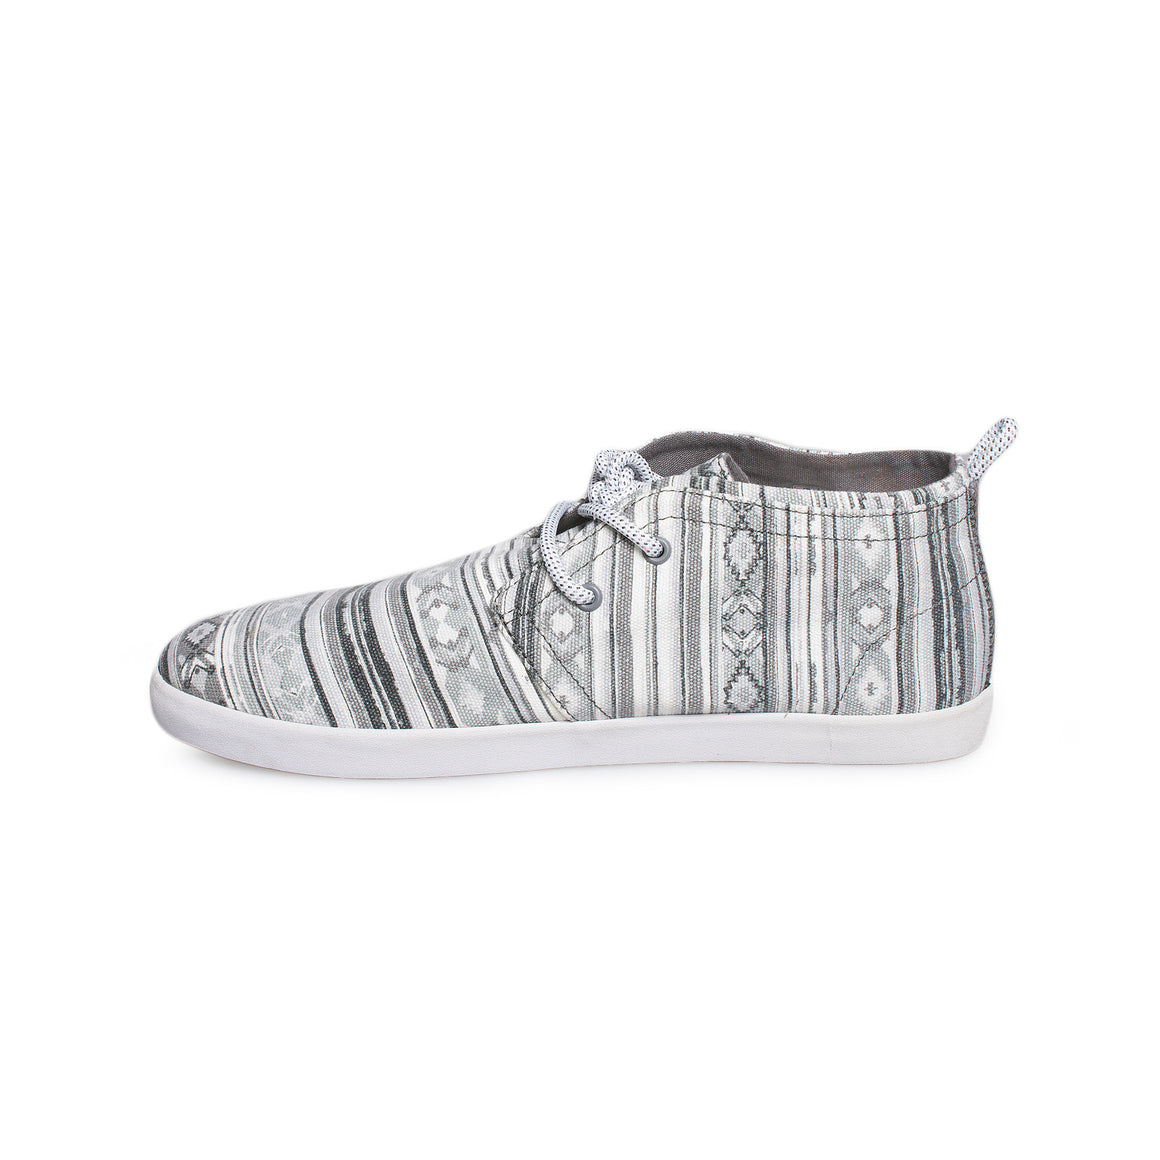 SANUK Cargo Funk Santa Fe Grey Blanket Shoes - Men's